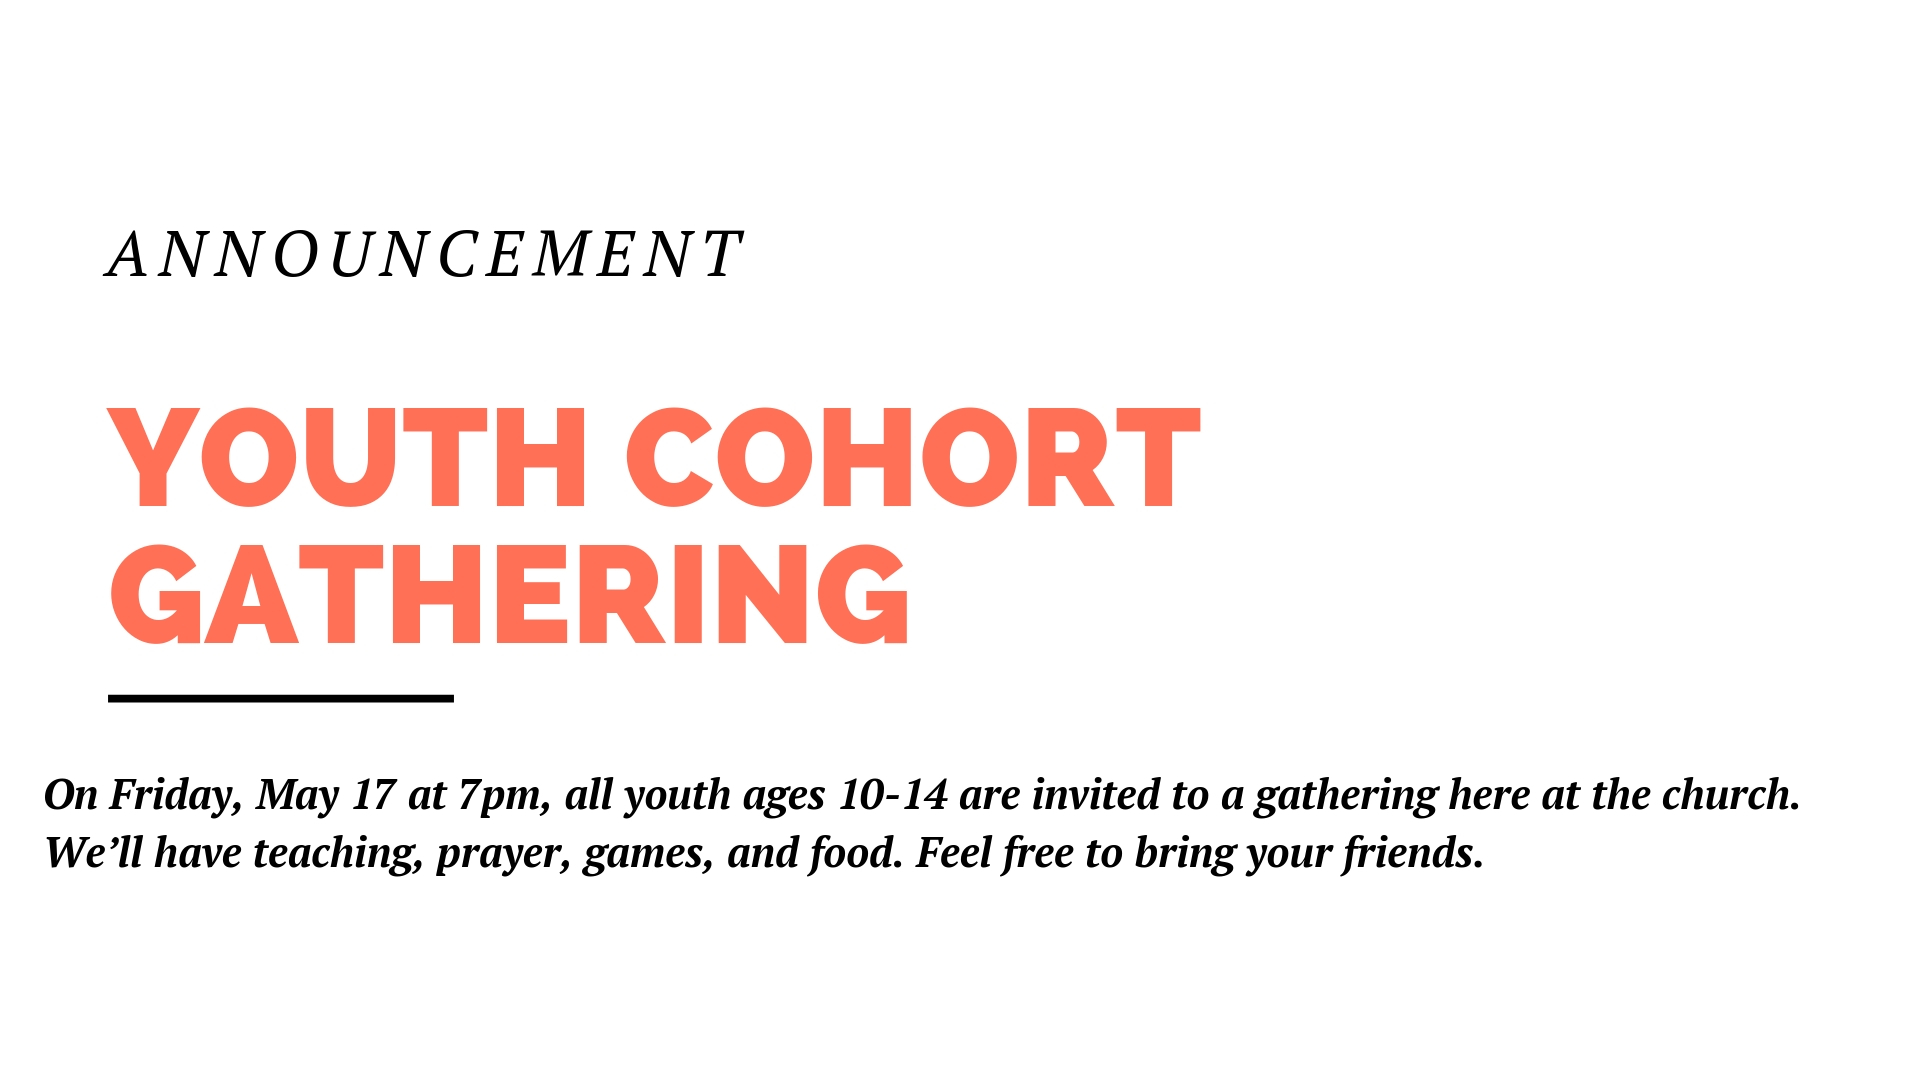 On Friday, May 17 at 7pm, all youth ages 10-14 are invited to a gathering here at the church. We'll have teaching, prayer, games, and food. Feel free to bring your friends.